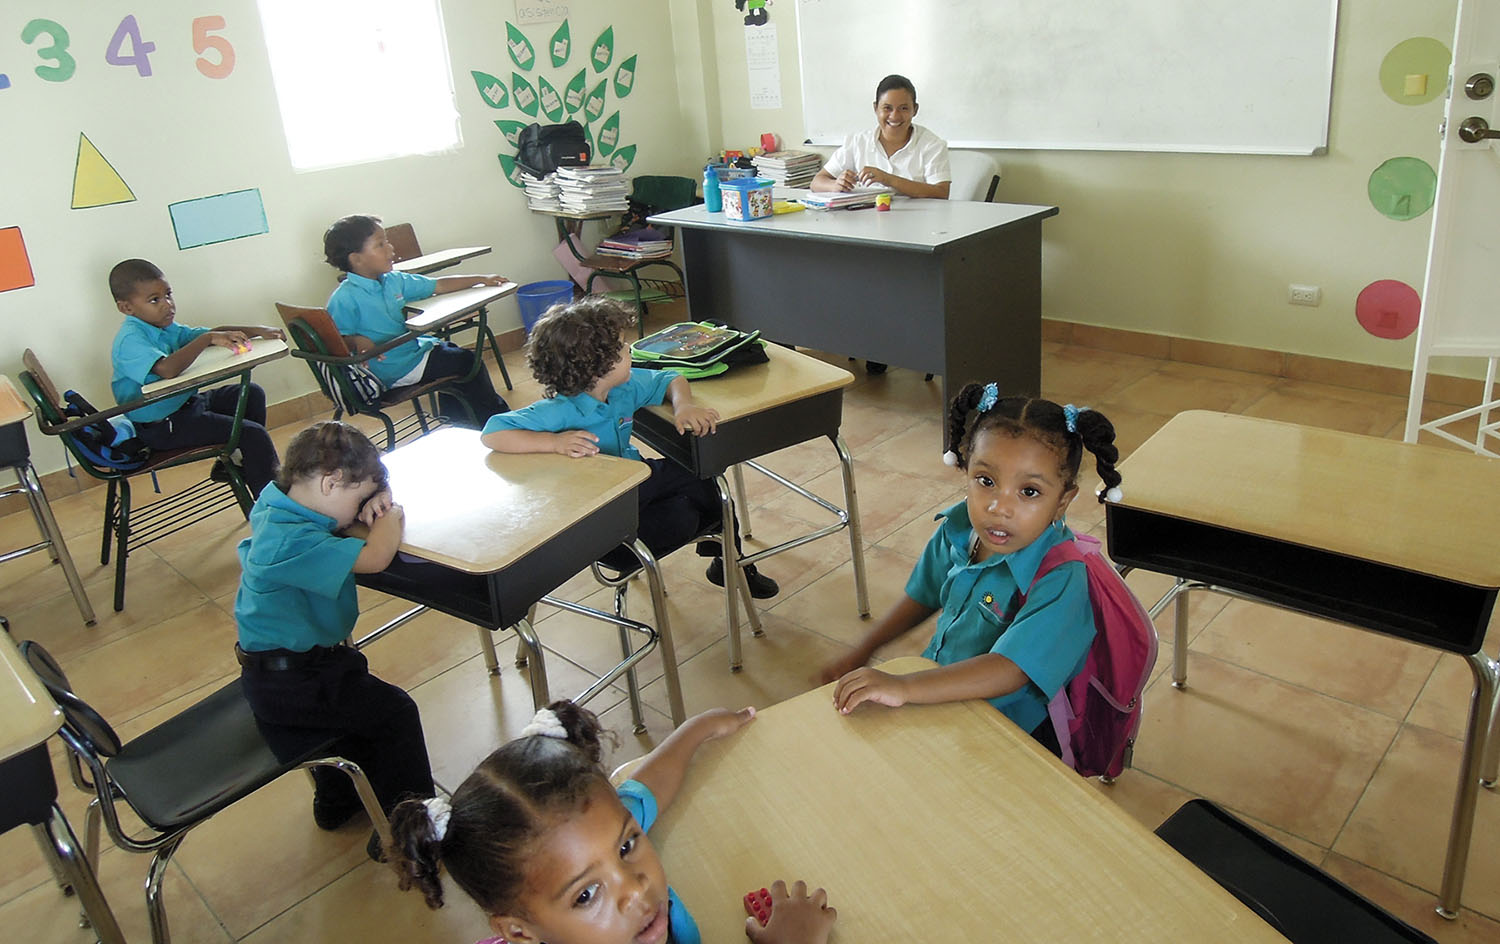 When a child enters our classrooms they feel loved and encouraged. Will you prayerfully consider sponsoring a child from the Dominican Republic? Call our office at 407-240-4058 or visit newmissions.org